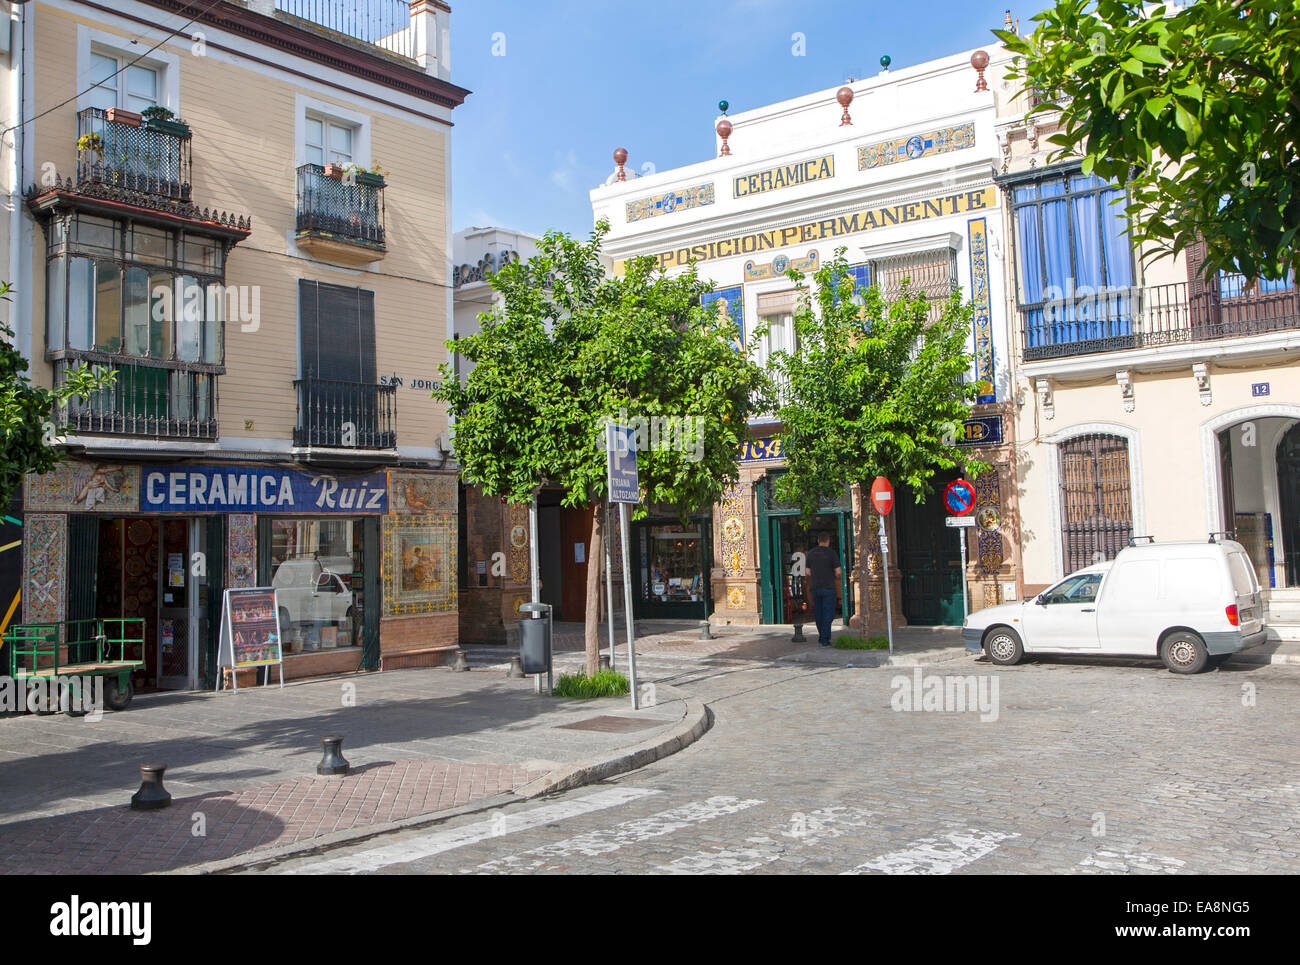 Ceramic Tile Shops In Triana Stock Photos & Ceramic Tile Shops In ...